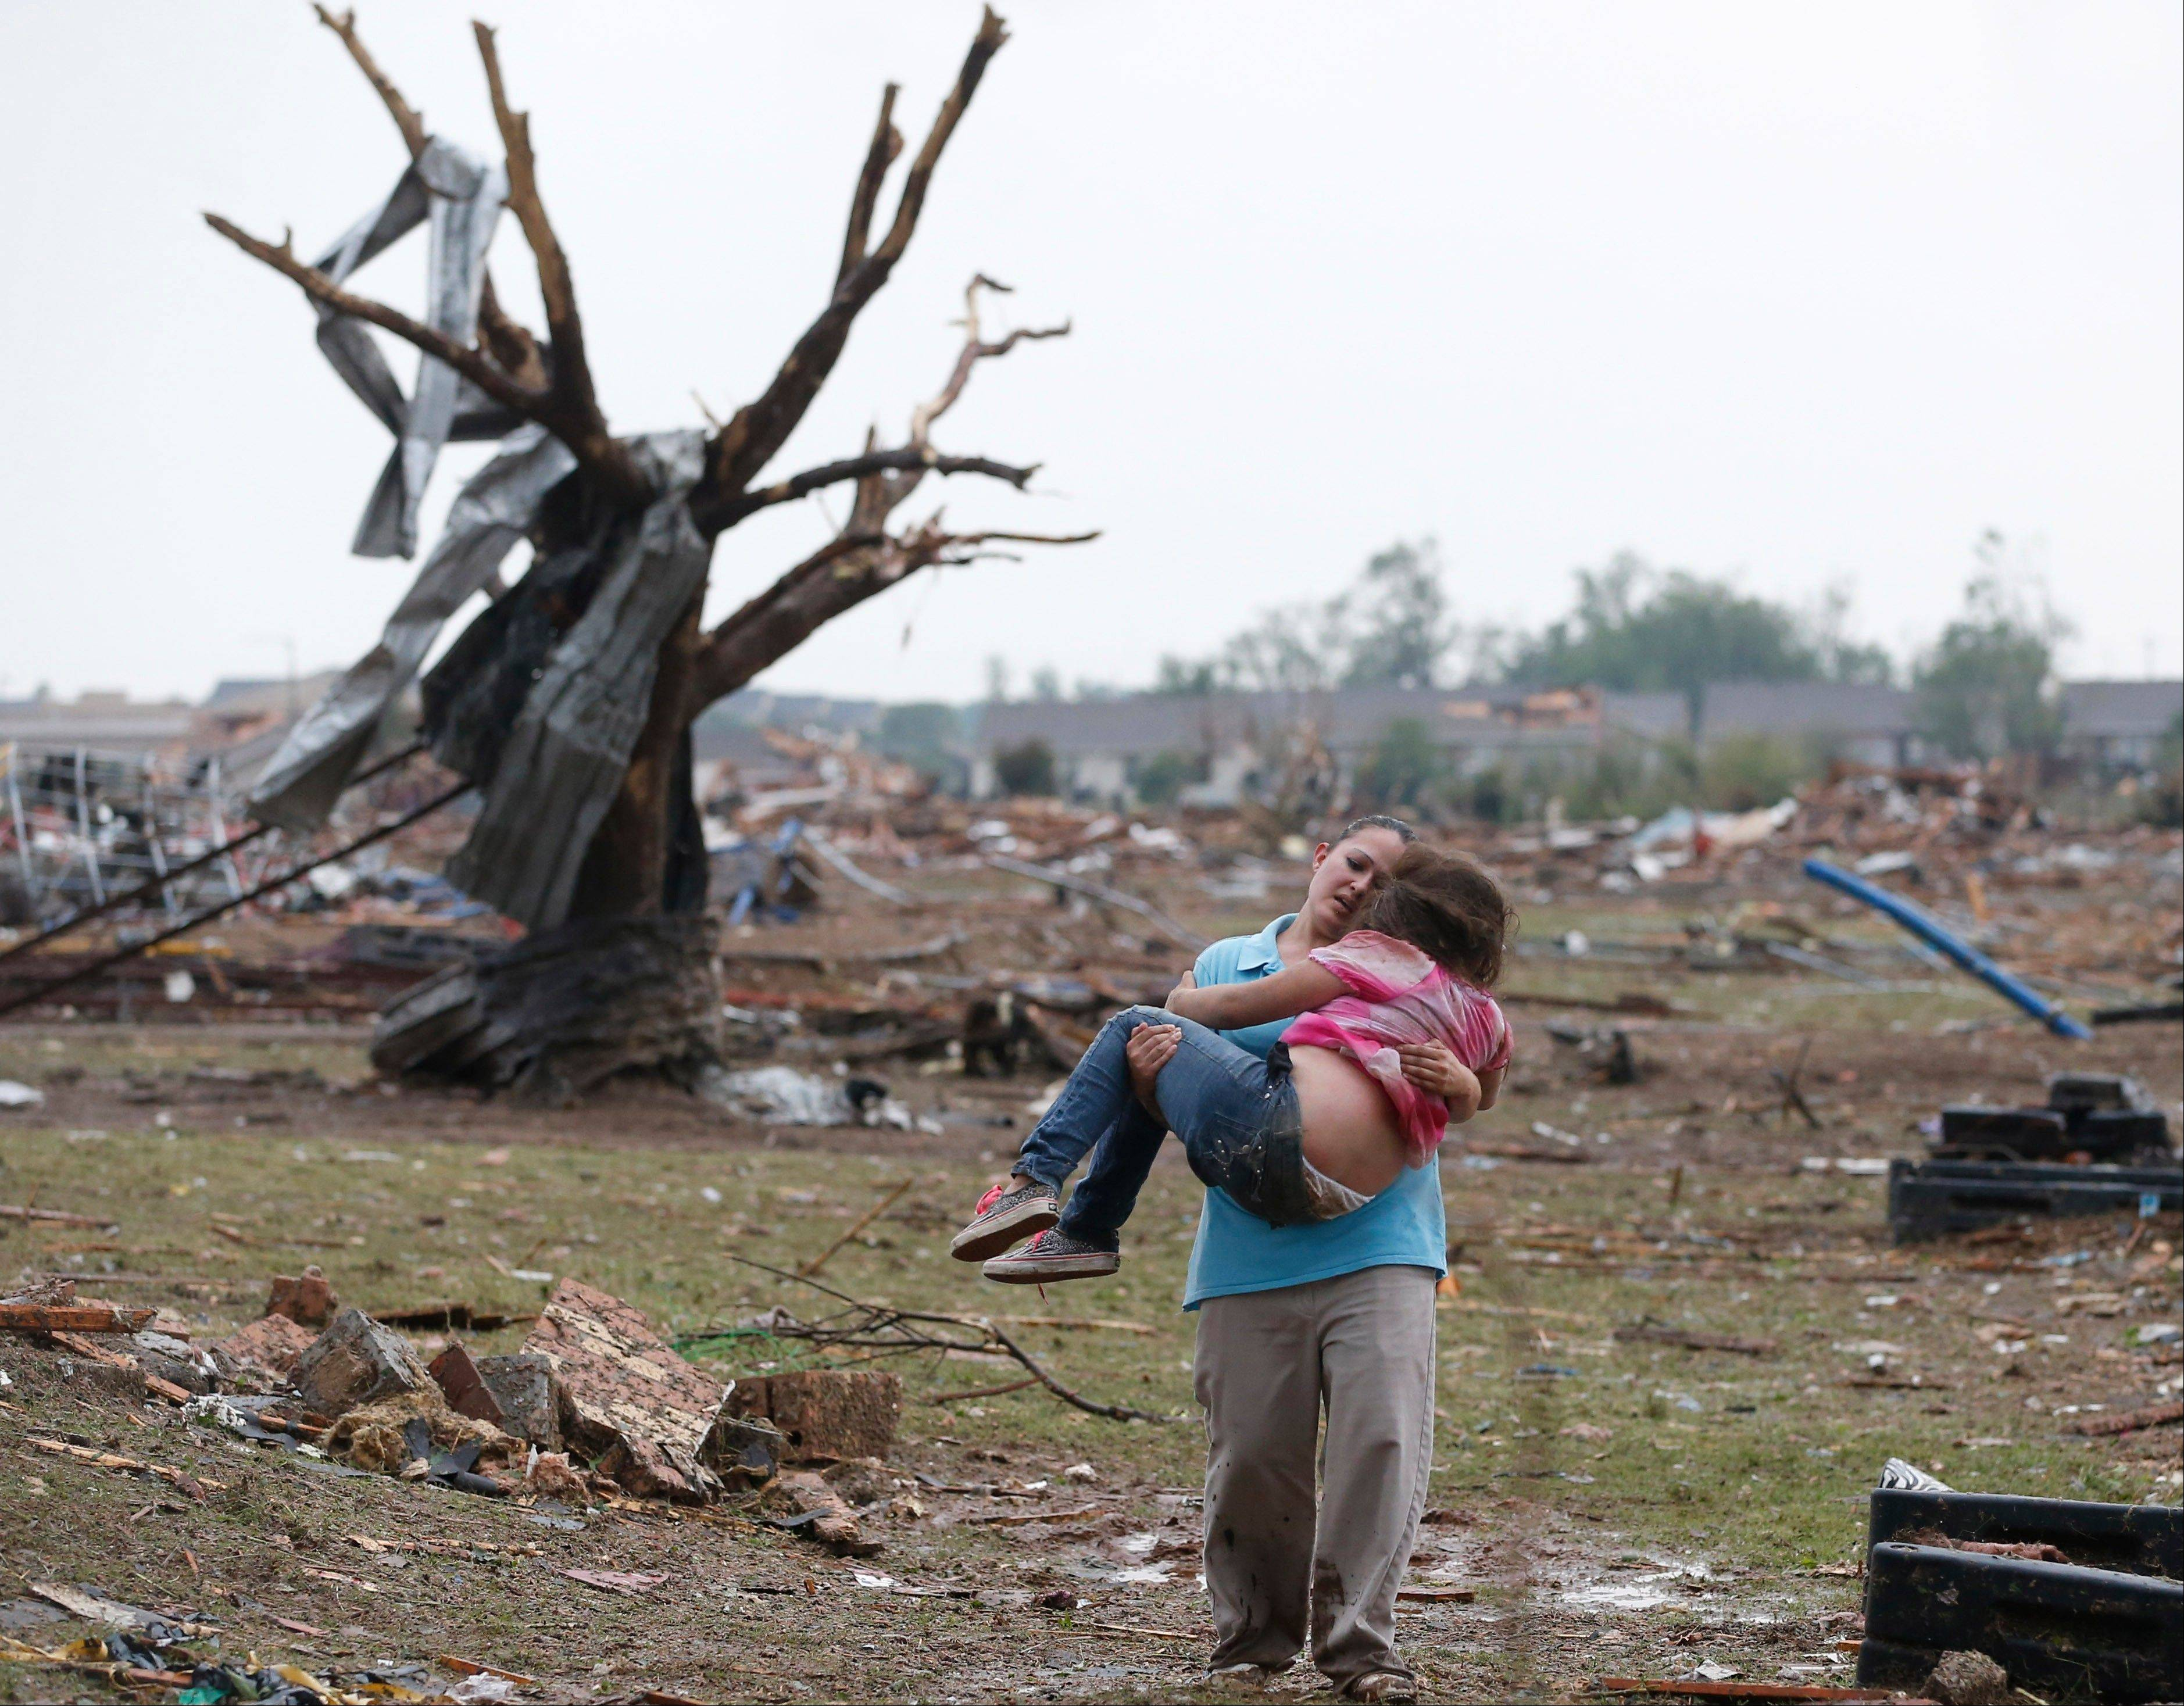 LaTisha Garcia carries her 8-year-old daughter, Jazmin Rodriguez near Plaza Towers Elementary School after a massive tornado carved its way through Moore, Okla., leaving little of the school and neighborhood. This picture, published on hundreds of front pages around the world, has become one of the enduring images from the storm.